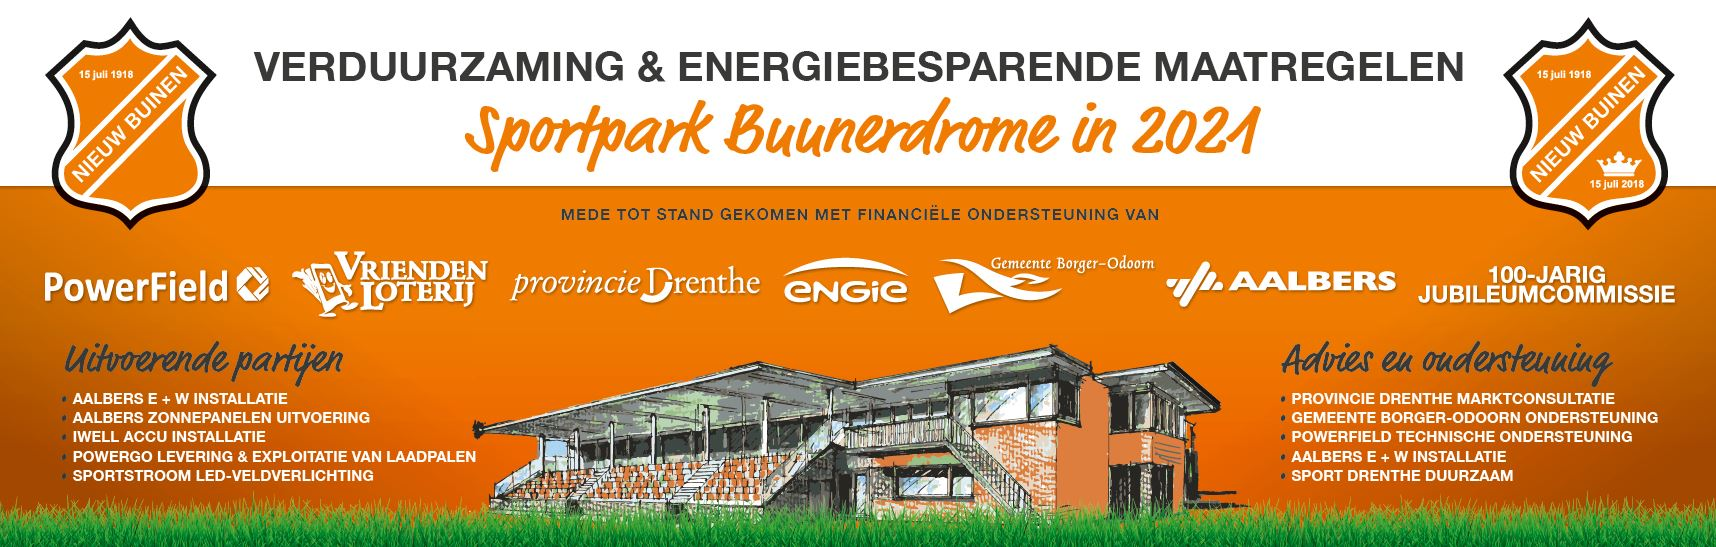 Voortgang project verduurzaming sportpark